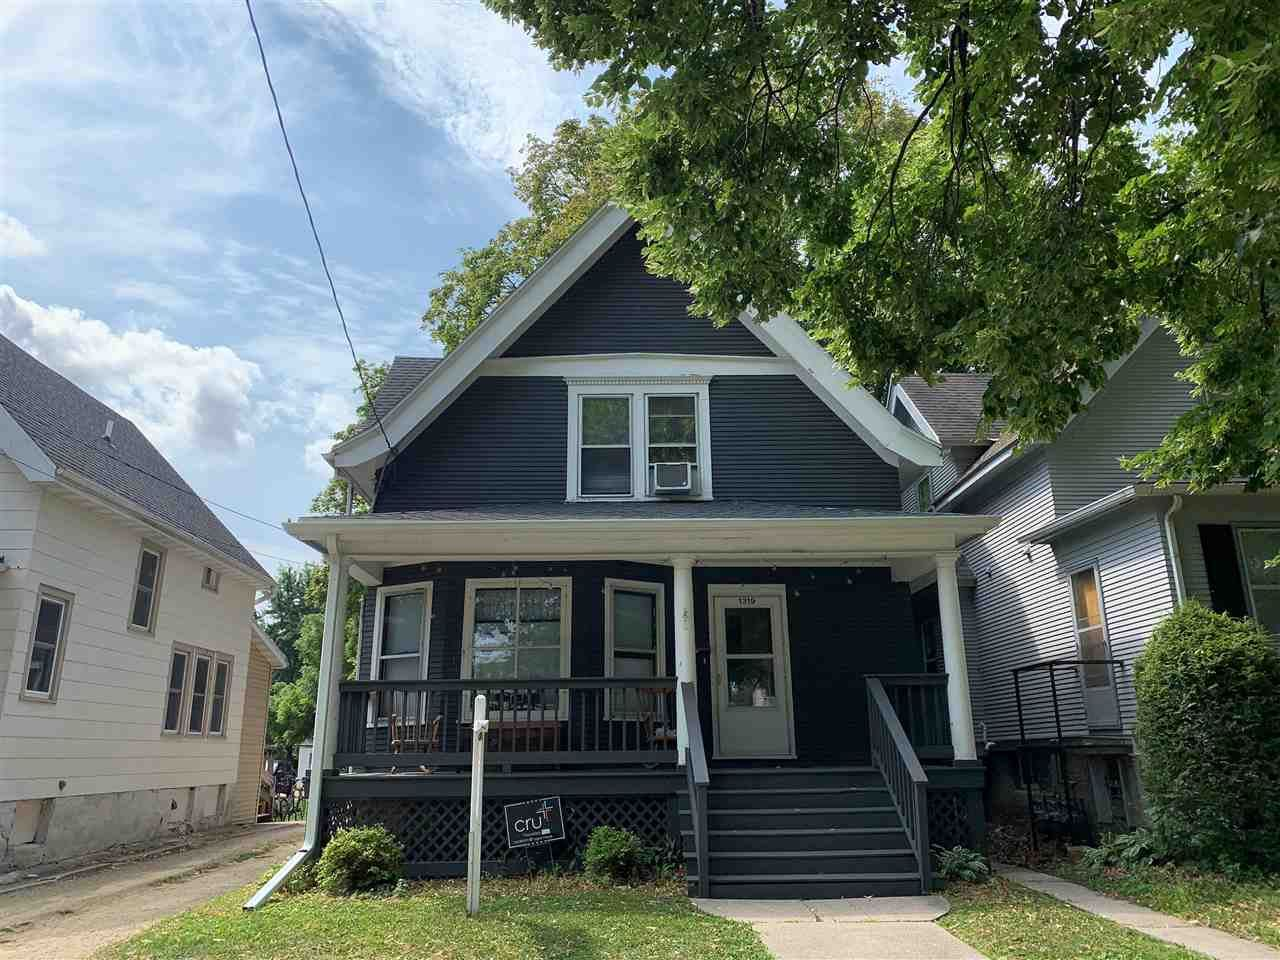 Photo for 1319 Mound St, Madison, WI 53715 (MLS # 1908235)